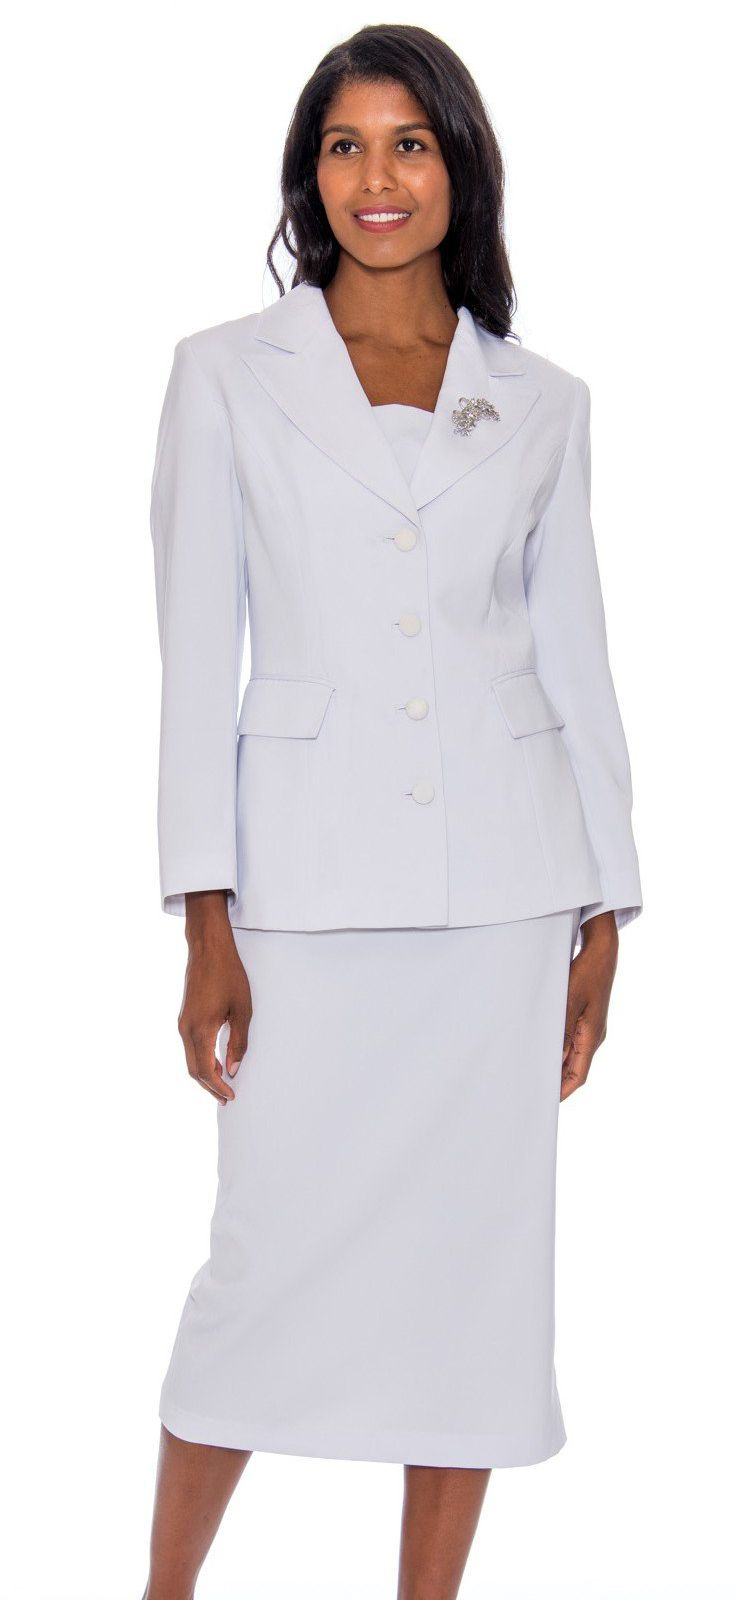 GMI Usher Suit 13382-White - Church Suits For Less